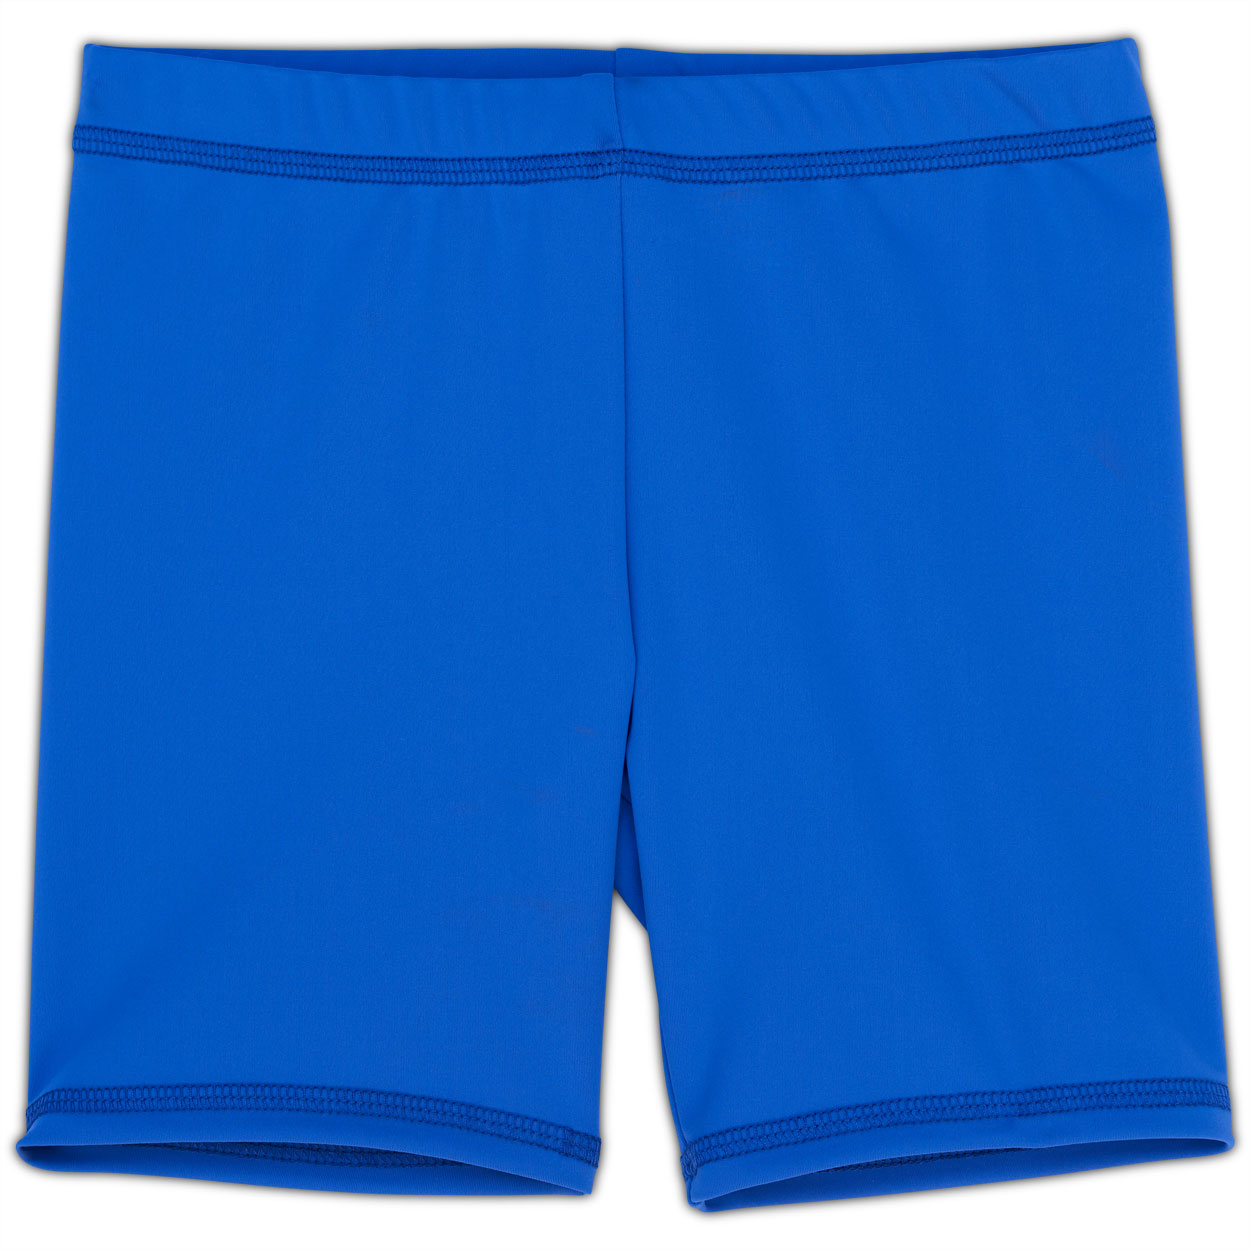 Royal Blue Sunblocker Shorts UPF 50+ for Kids